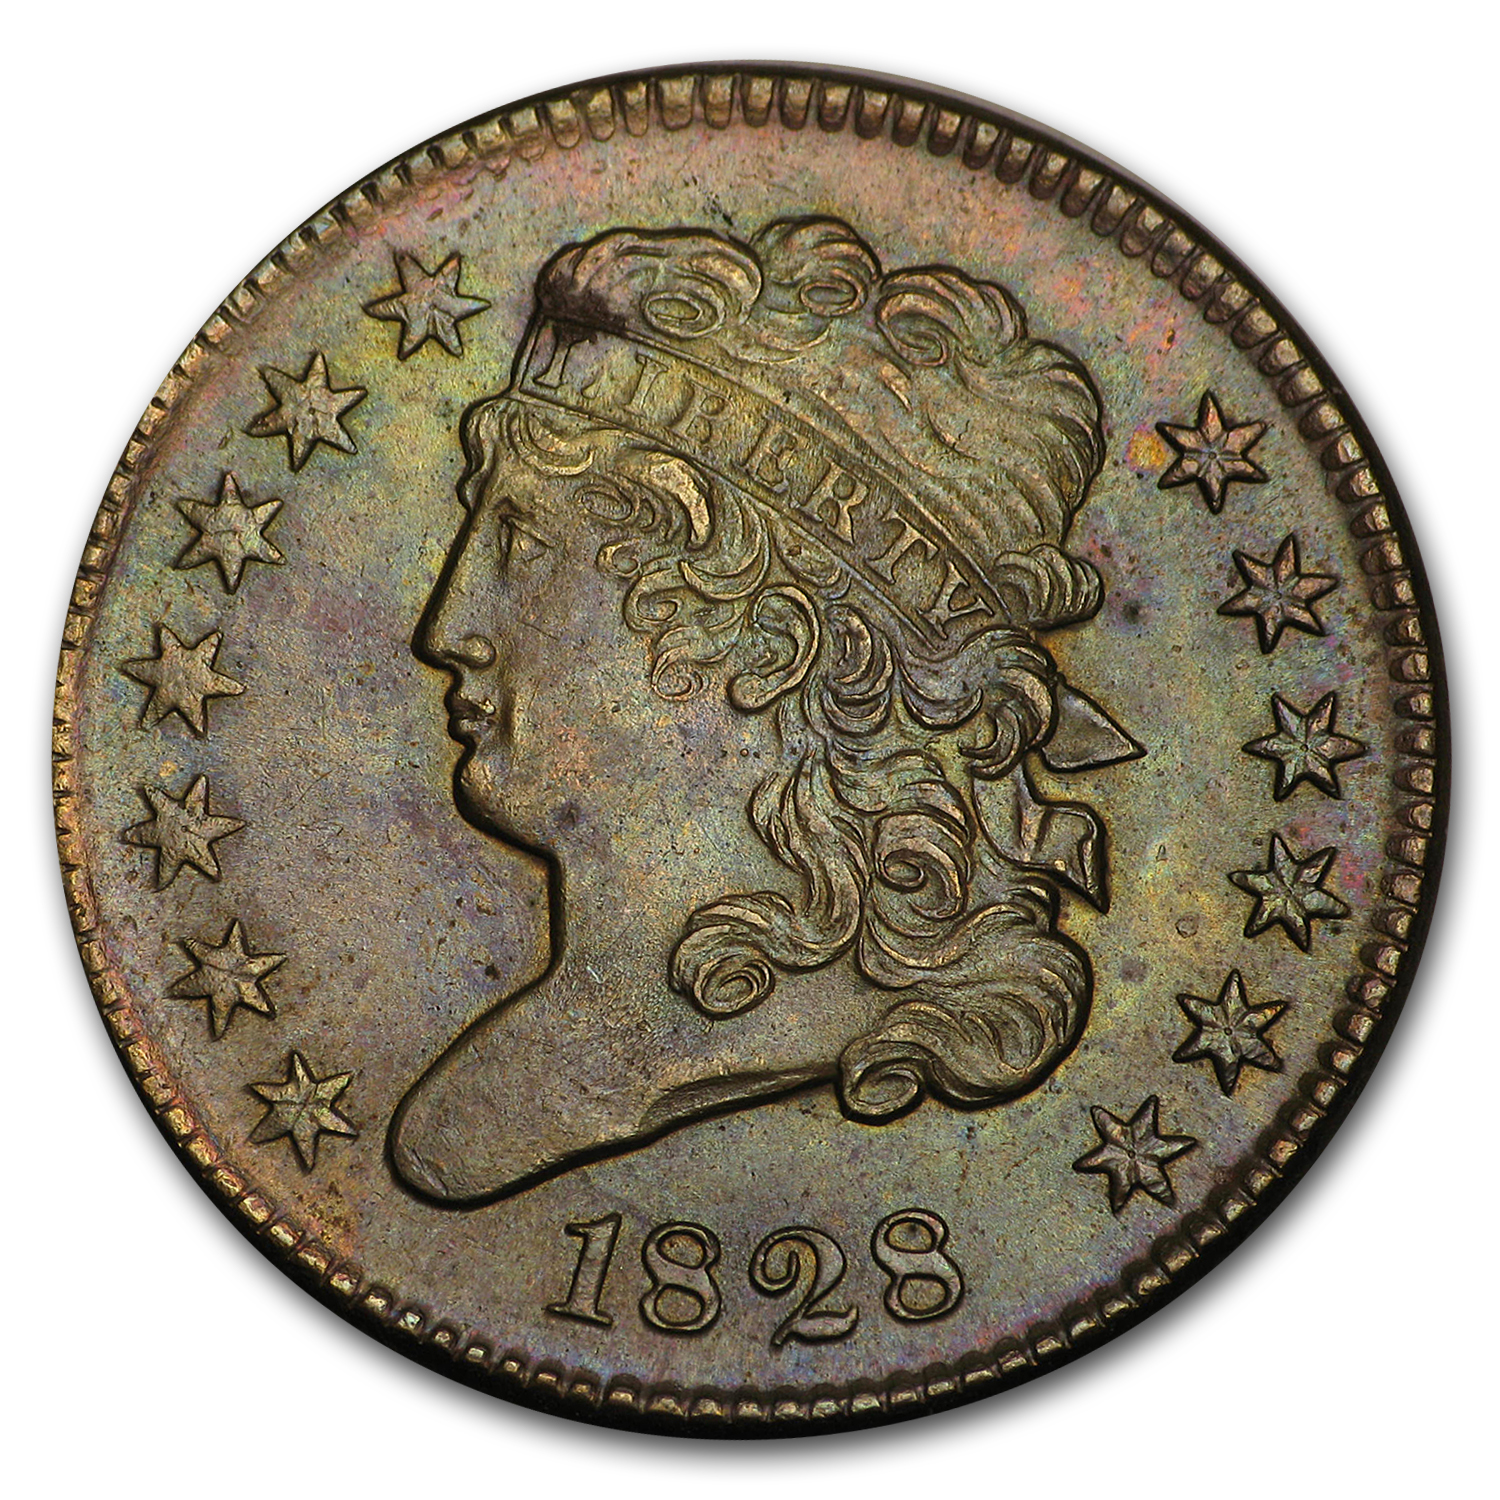 1828 Half Cent 13 Stars MS-63 (Brown)